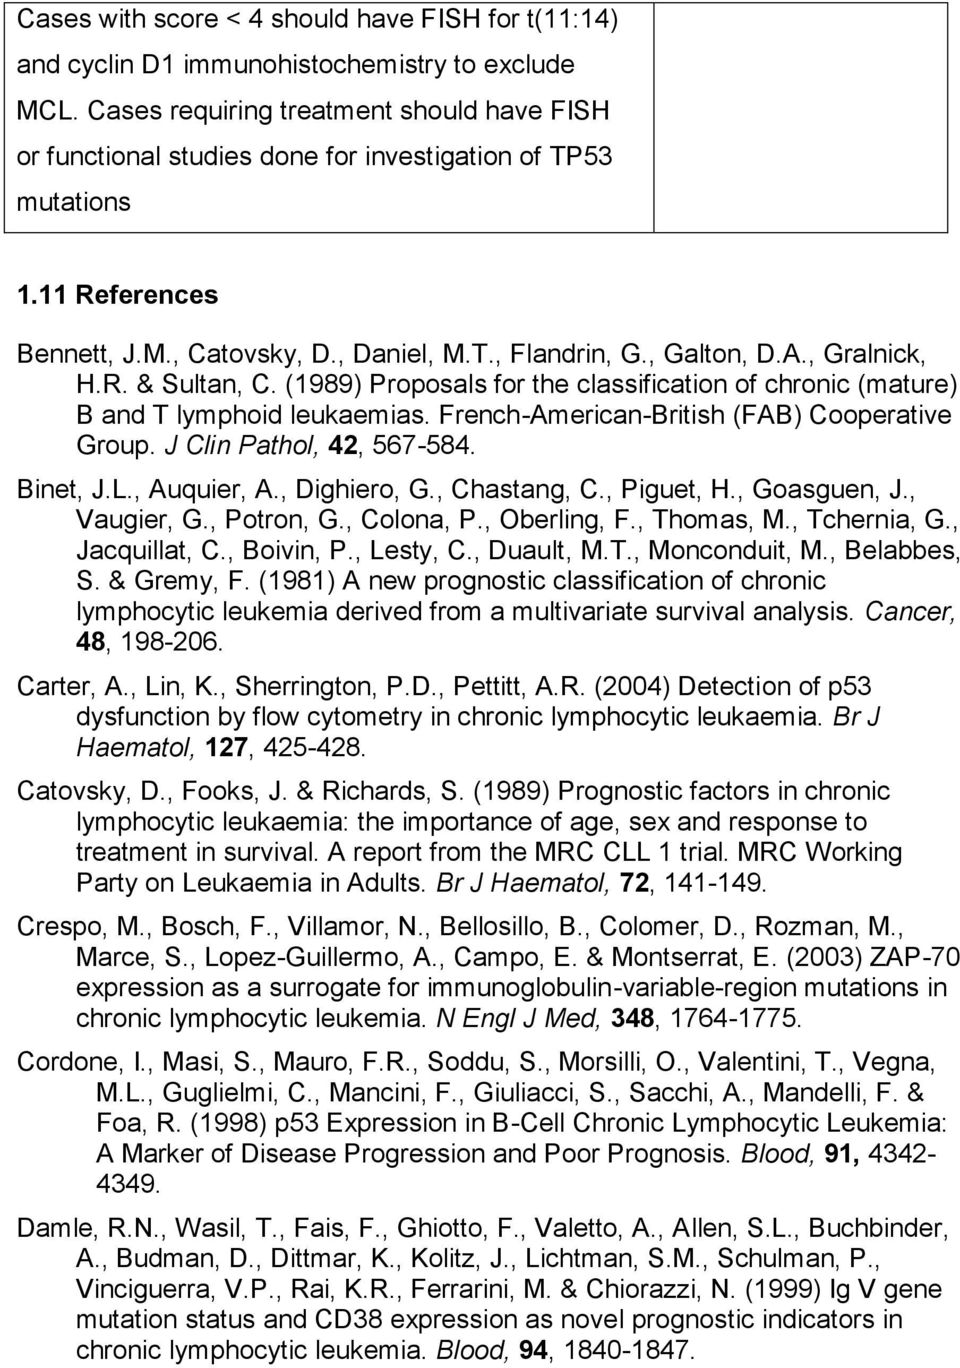 , Gralnick, H.R. & Sultan, C. (1989) Proposals for the classification of chronic (mature) B and T lymphoid leukaemias. French-American-British (FAB) Cooperative Group. J Clin Pathol, 42, 567-584.